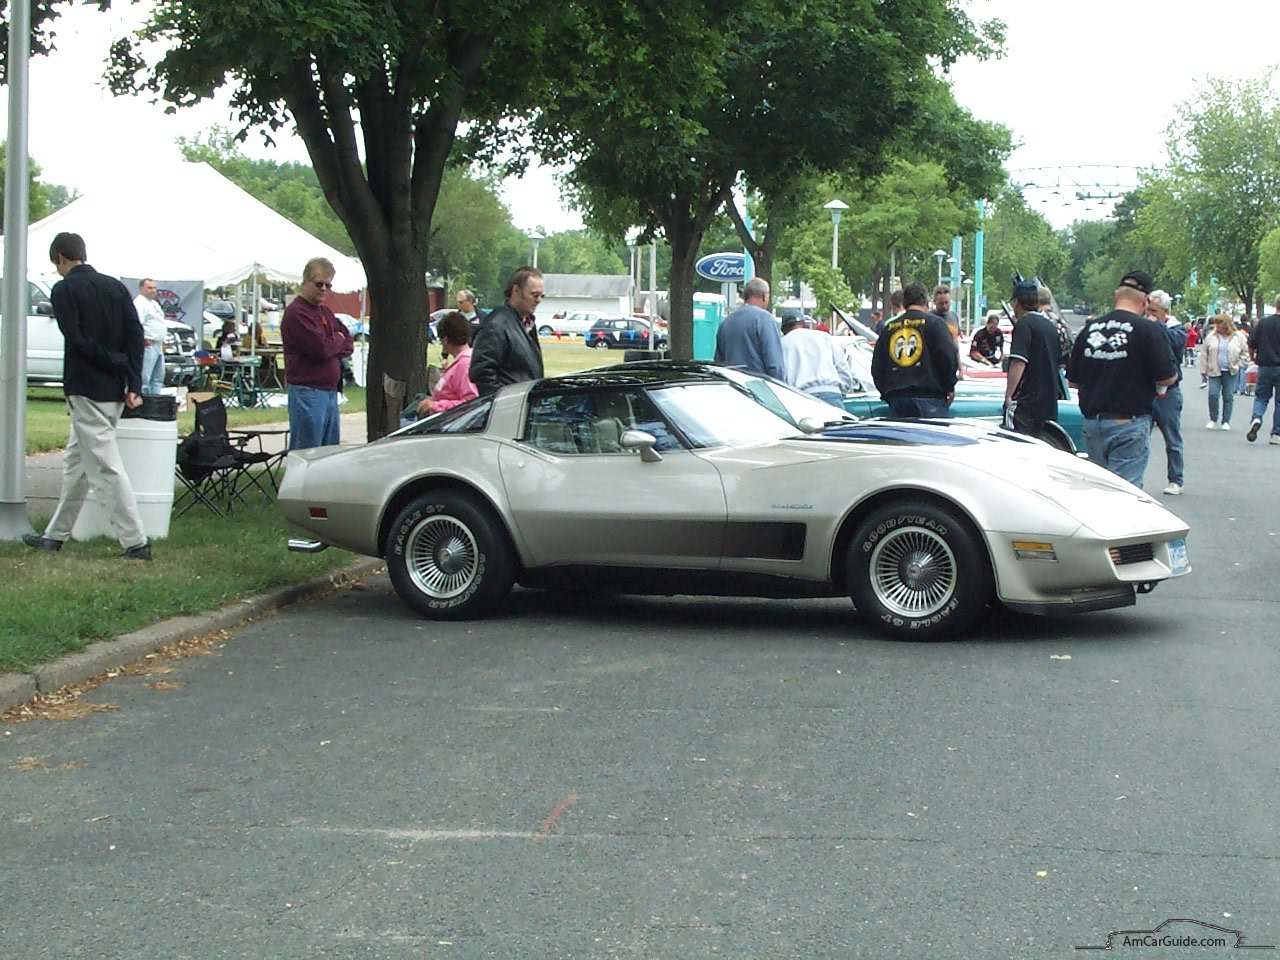 1982 corvette collector edition in ebay motors for Ebay motors classic cars for sale by owner